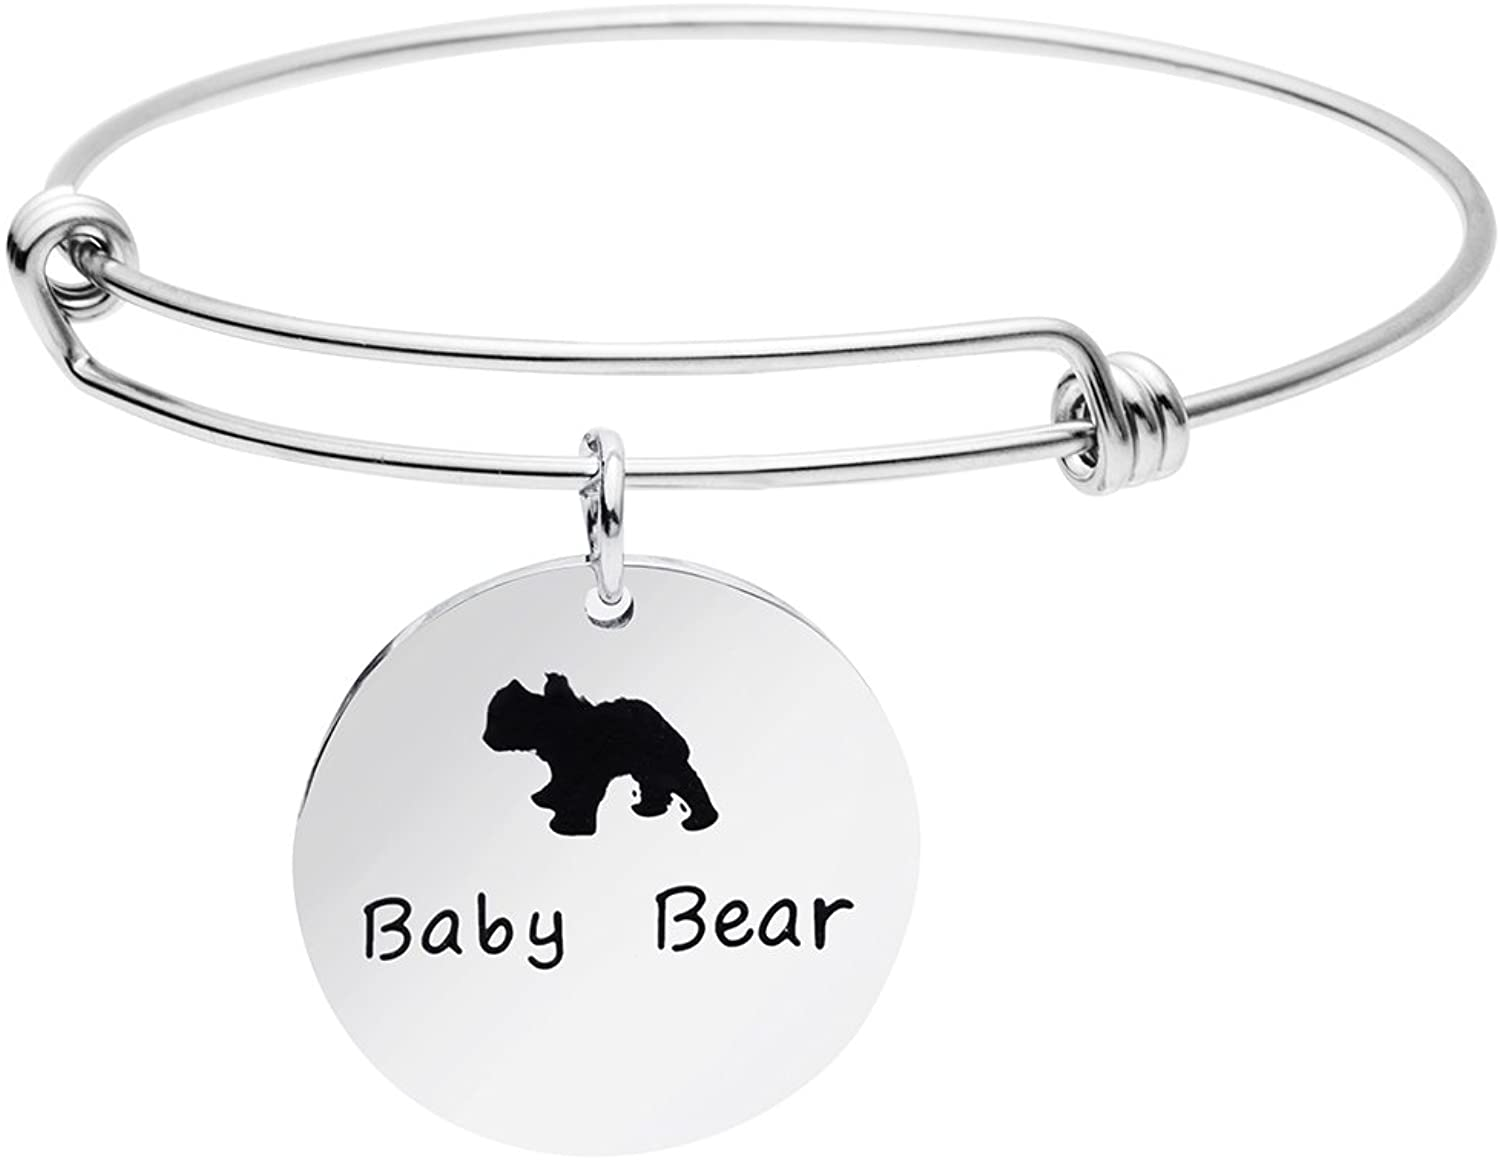 Mother's Day Jewelry Gift Mom Mama Bear Bracelet Necklace Adjustable Bangle Gifts